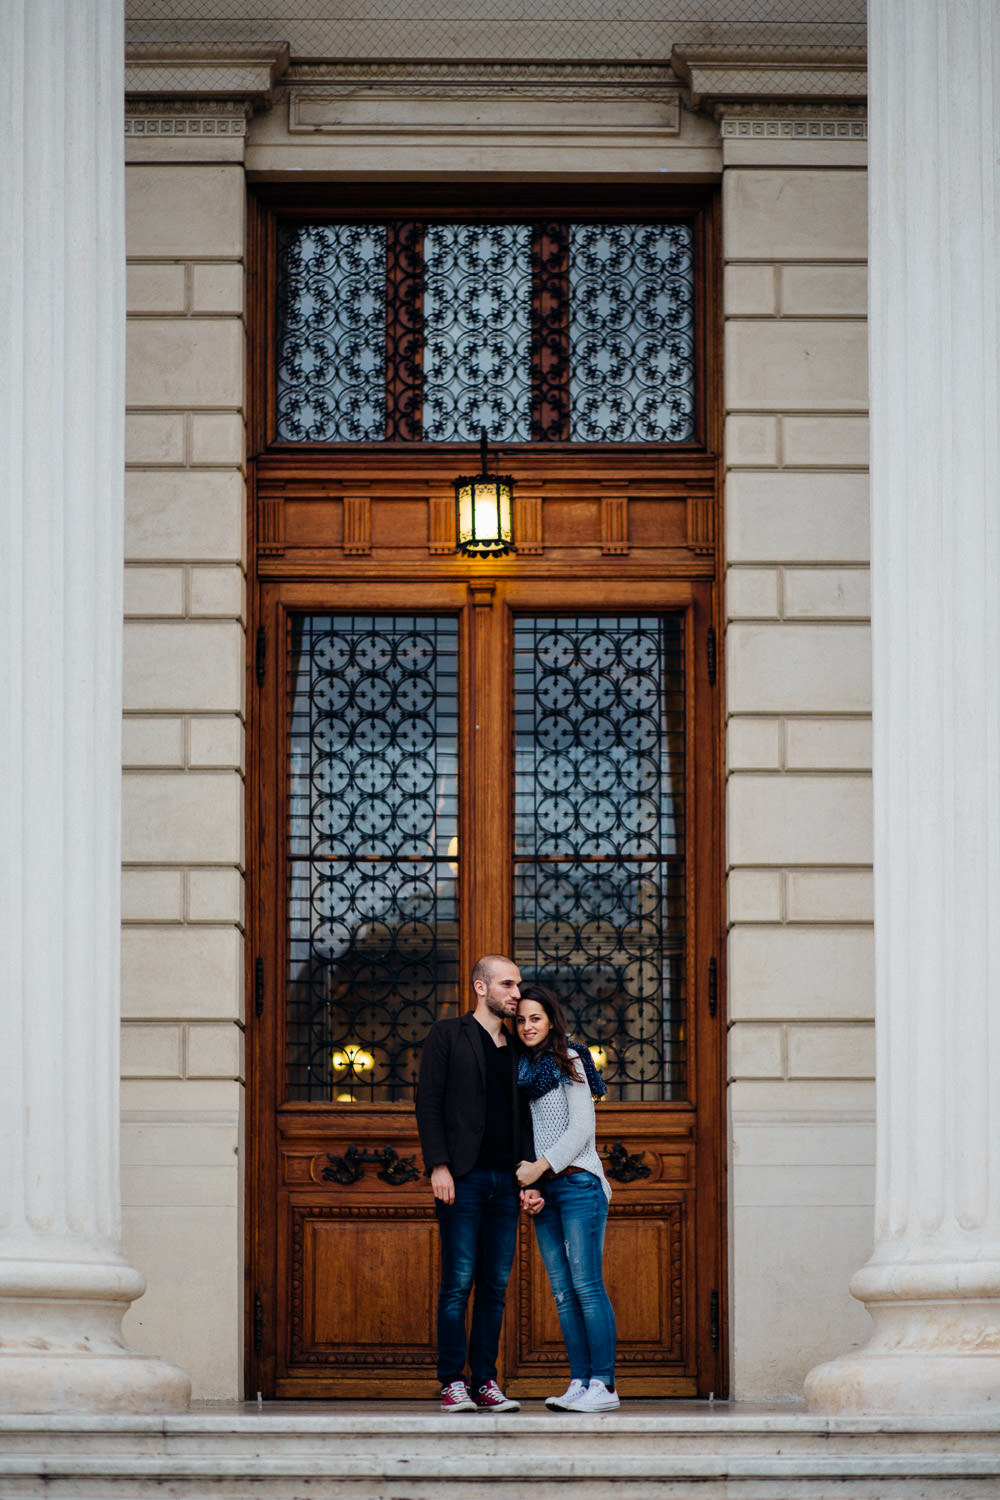 Ionut & Estera engagement Bucharest-1034